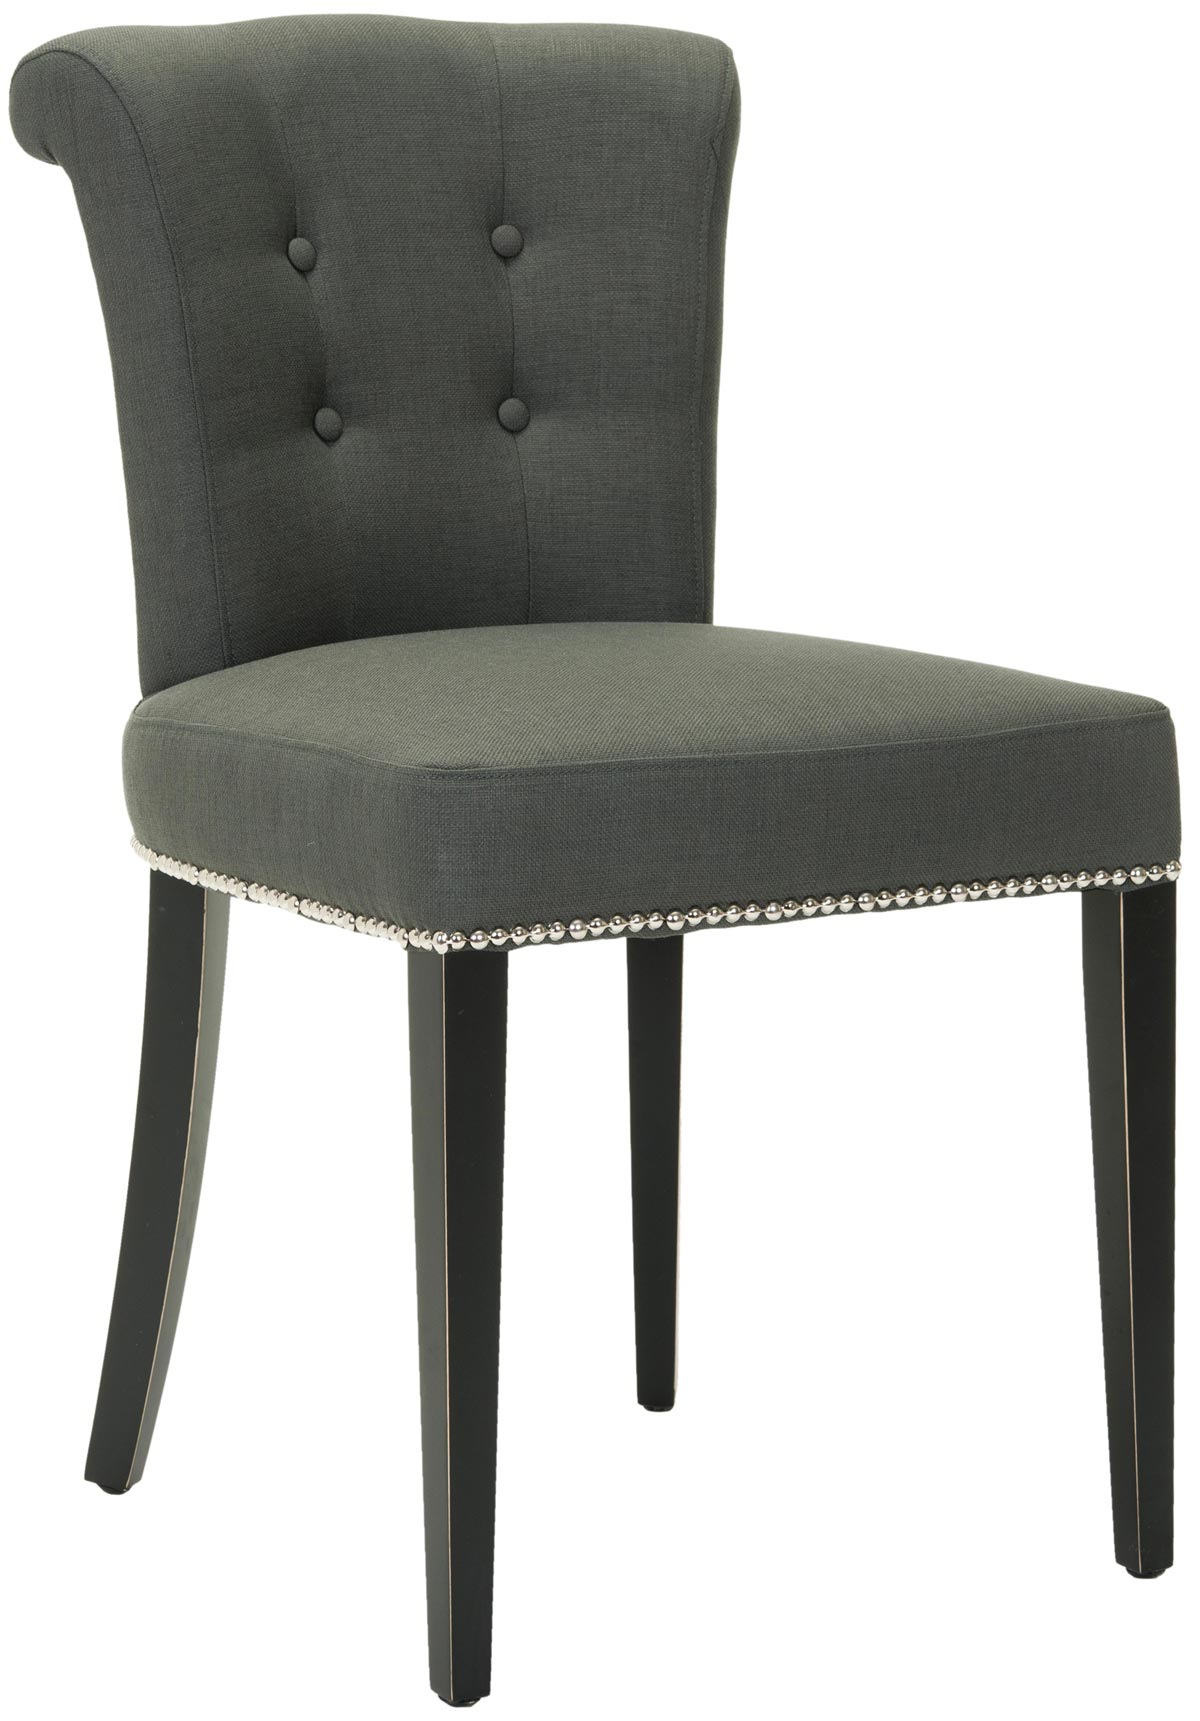 safavieh sinclair ring side chair pad foam mcr4514a arion gray set of two